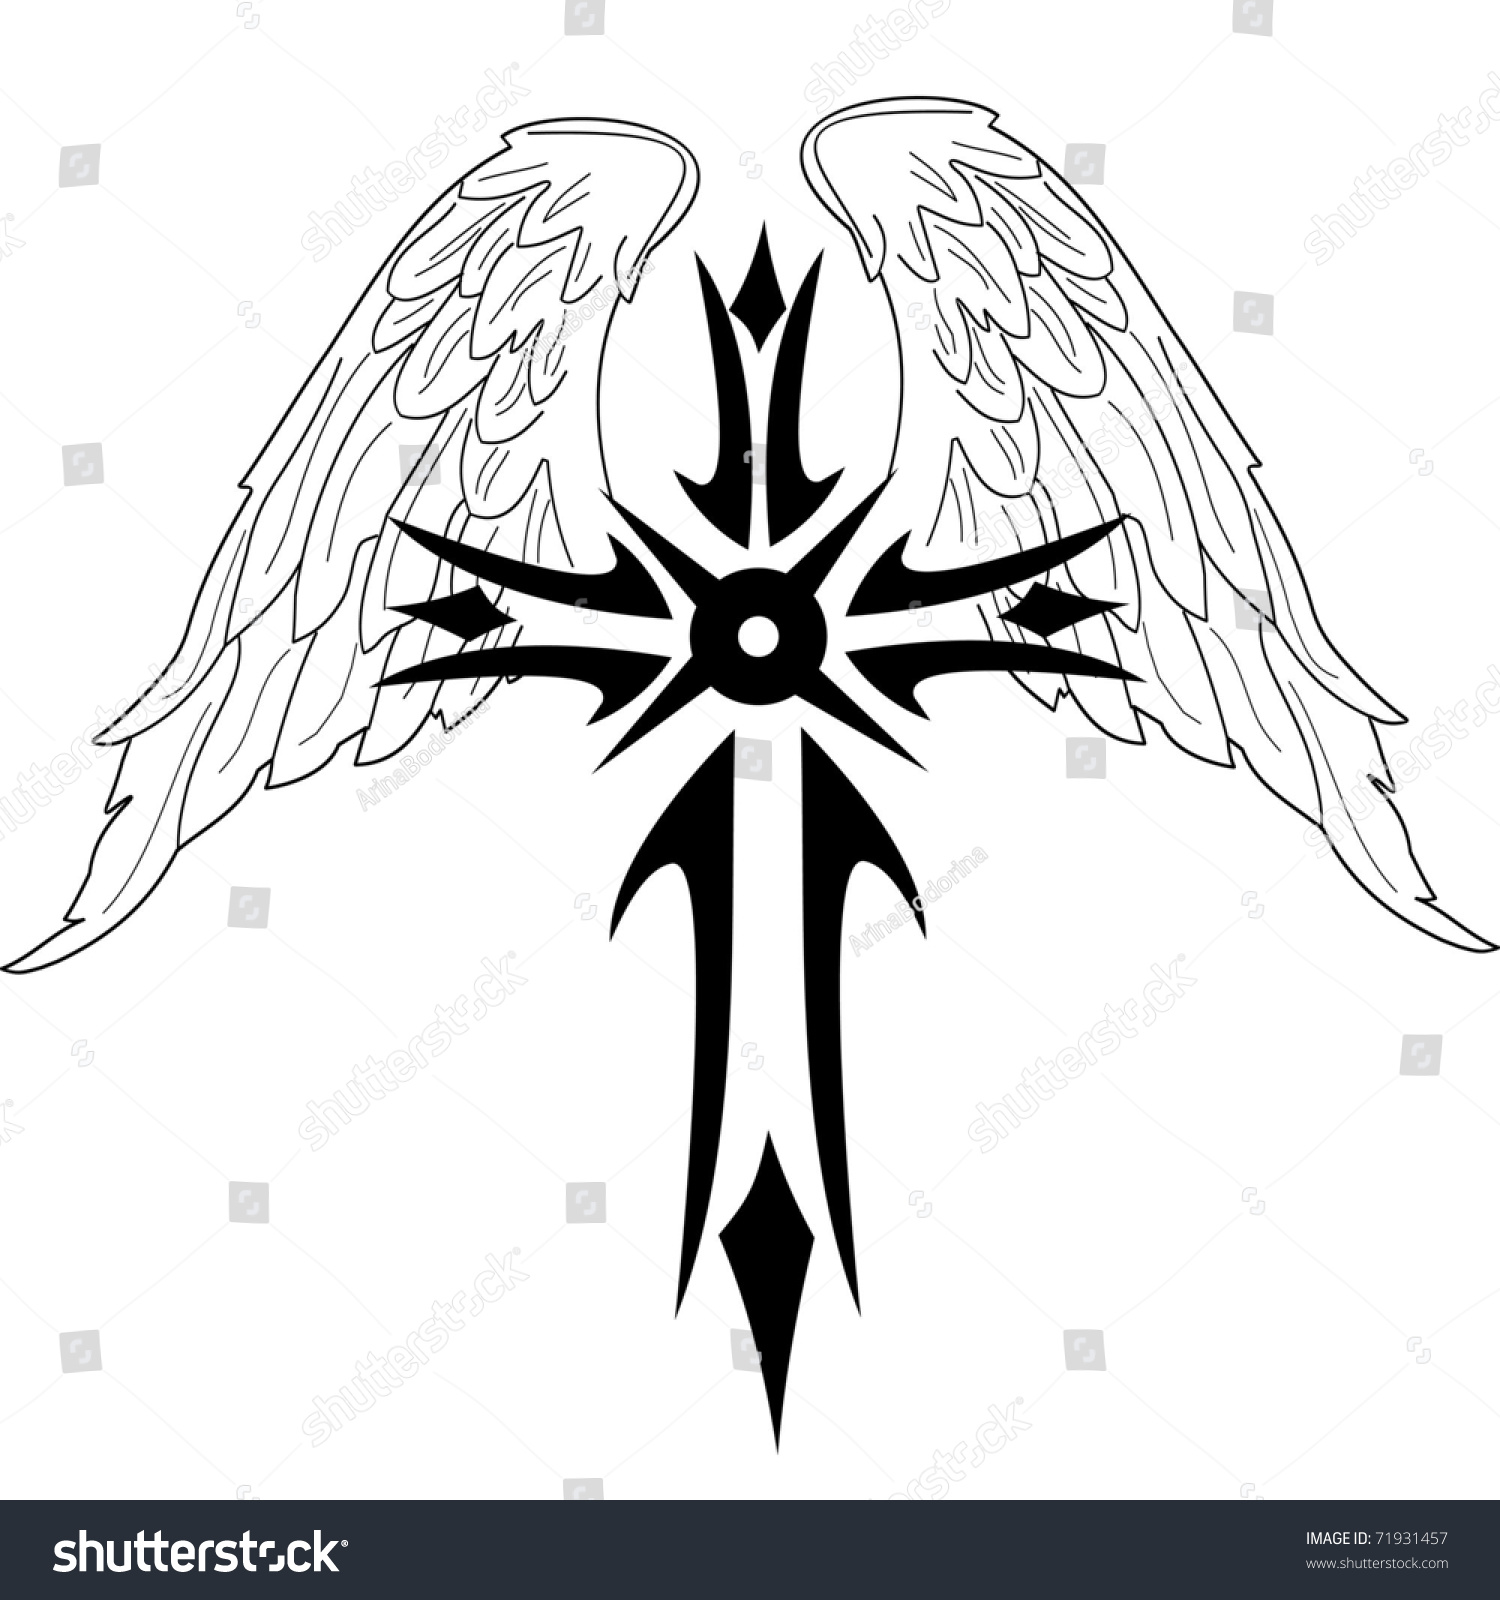 Black Cross With Wings On White Background Stock Vector ...